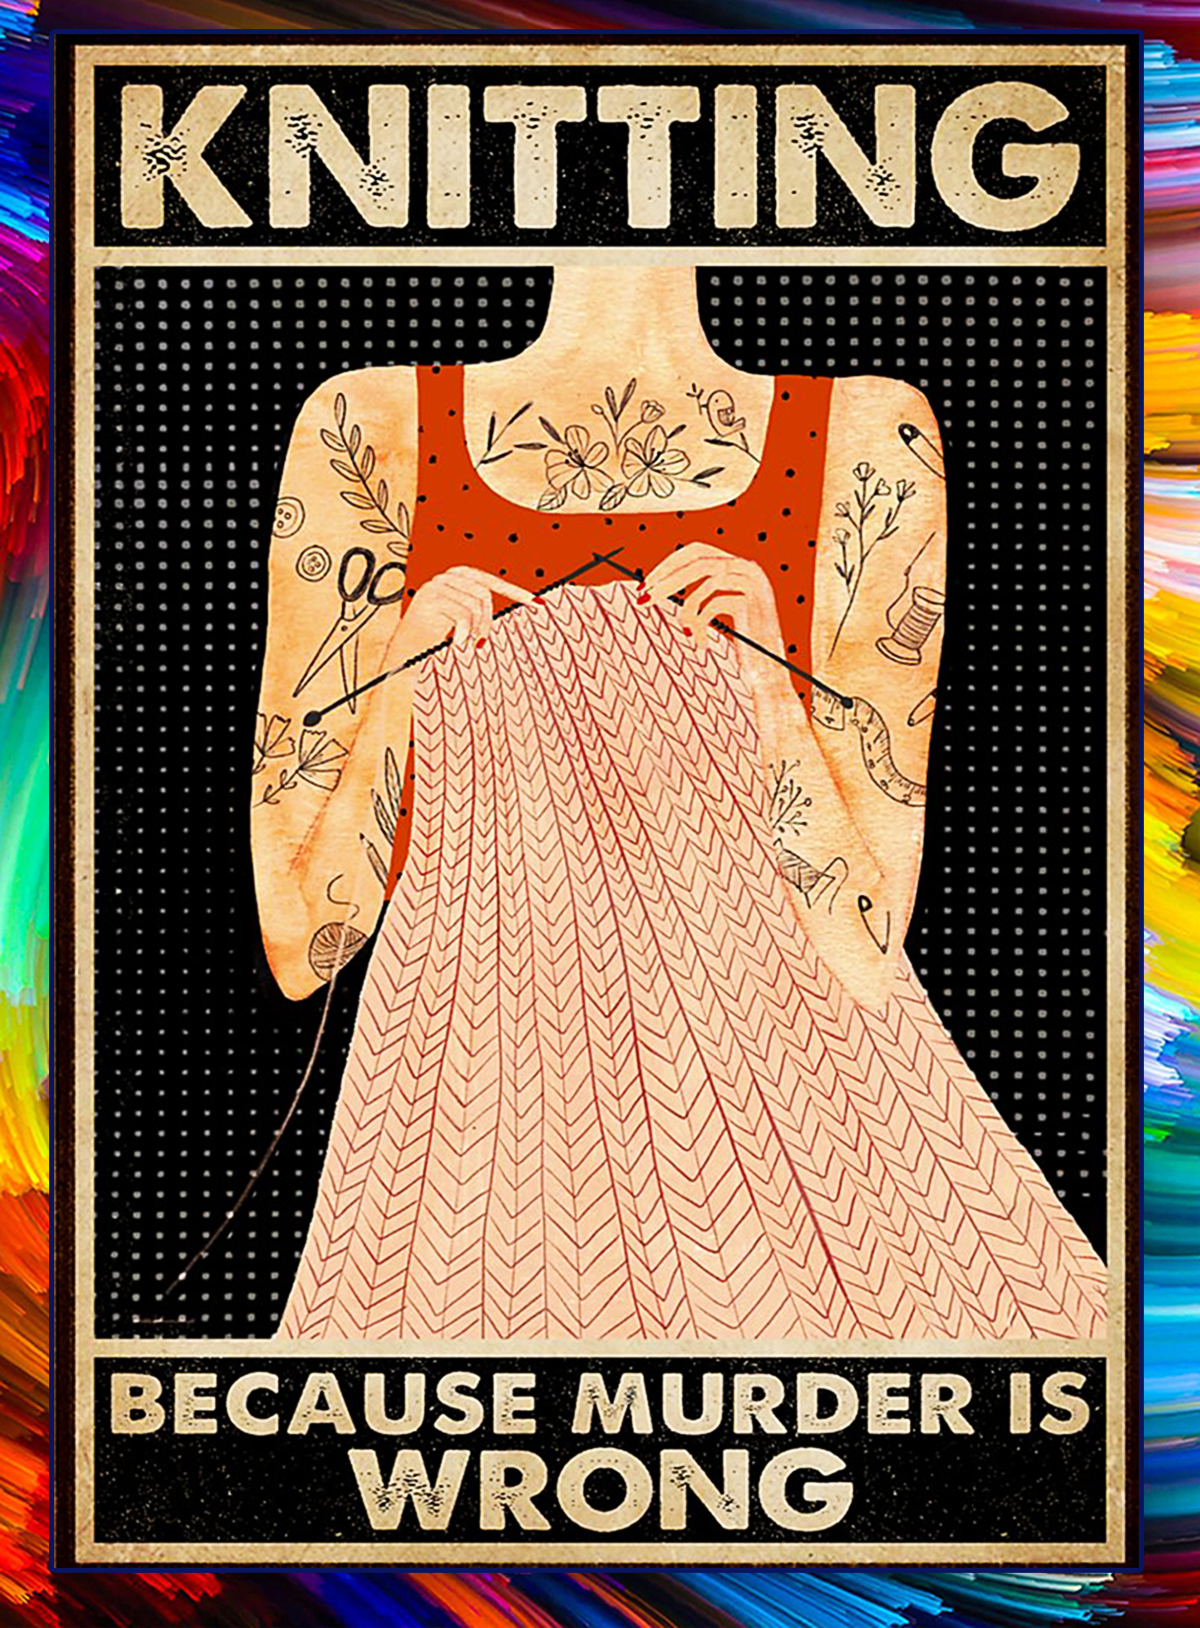 Tattoo girl knitting because murder is wrong poster - A1